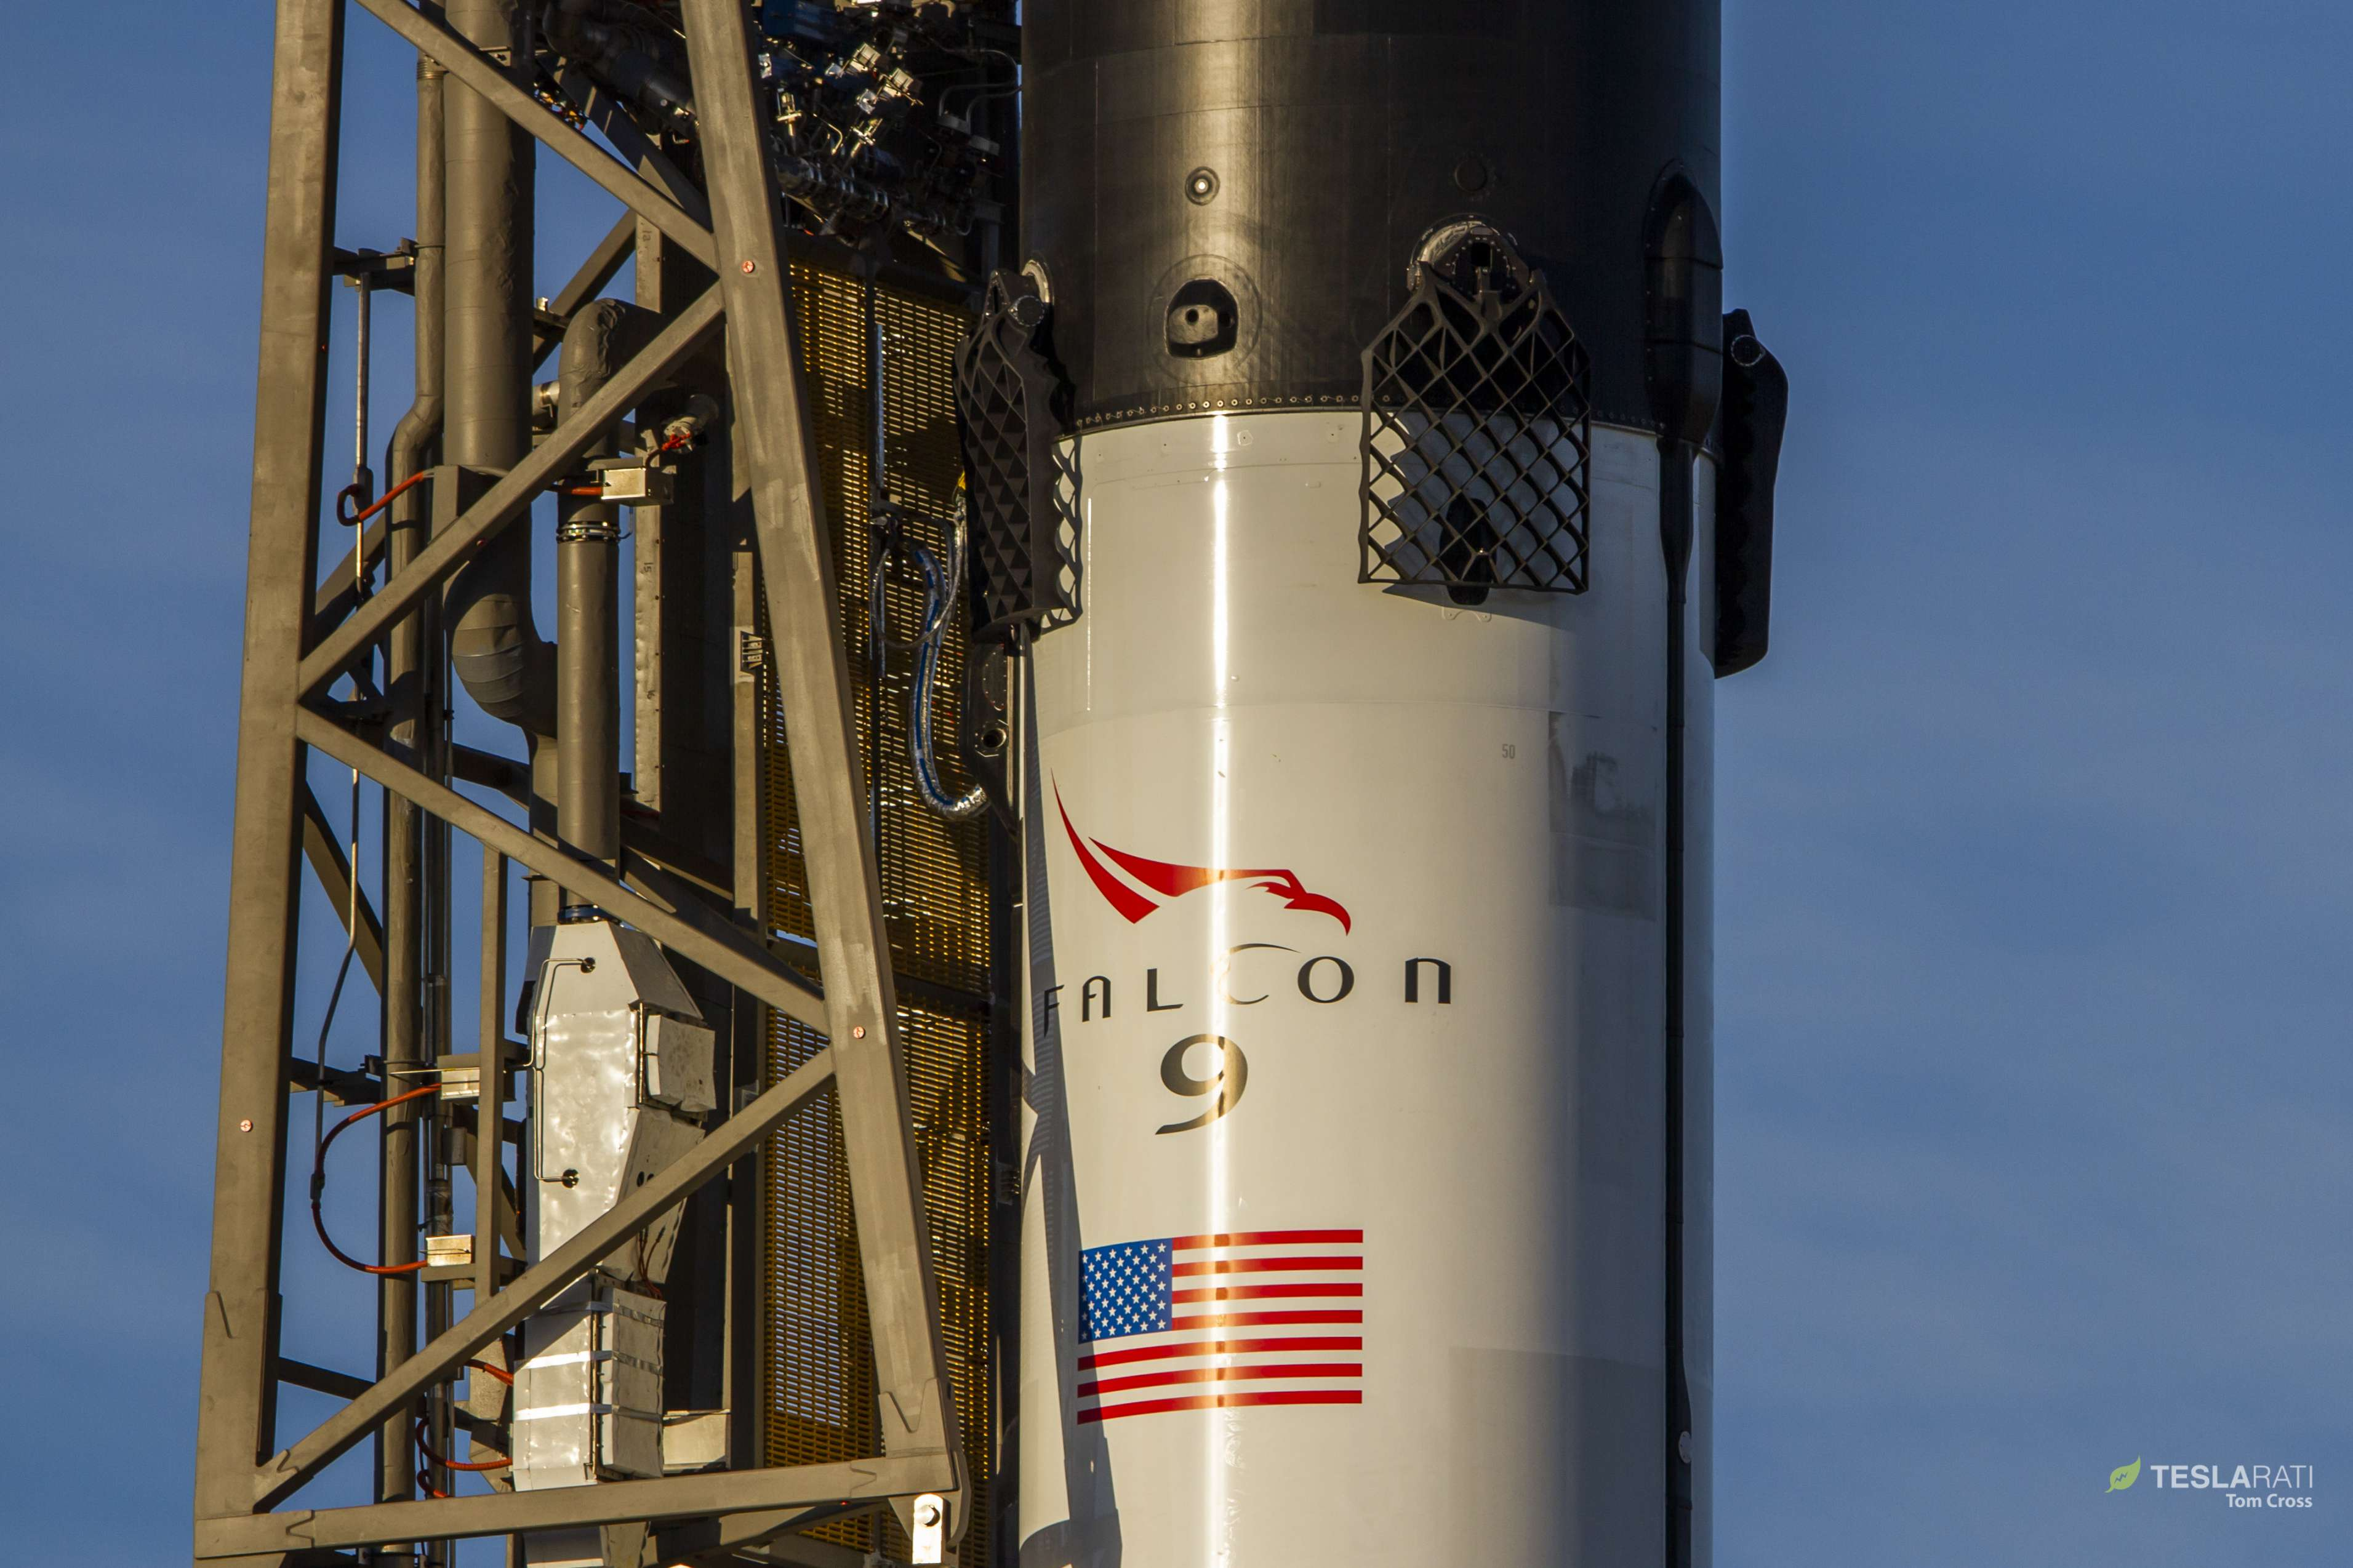 Falcon 9 B1050 Cargo Dragon CRS-16 prelaunch (Tom Cross) 7(c)